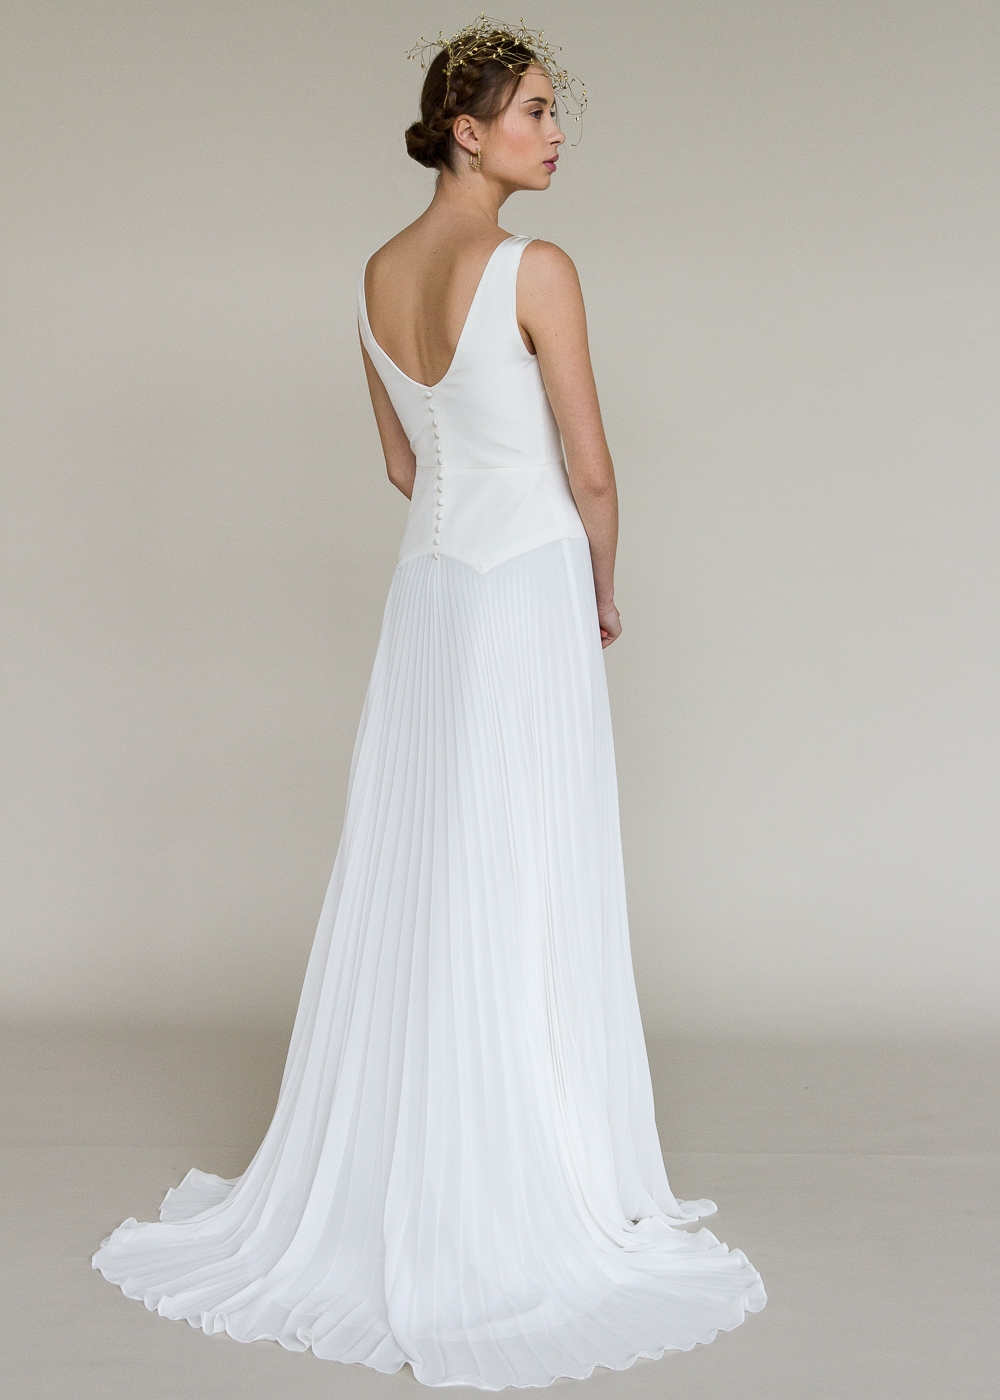 grace-robe-de-mariee-valentine-avoh-wedding-dress-dos.jpg